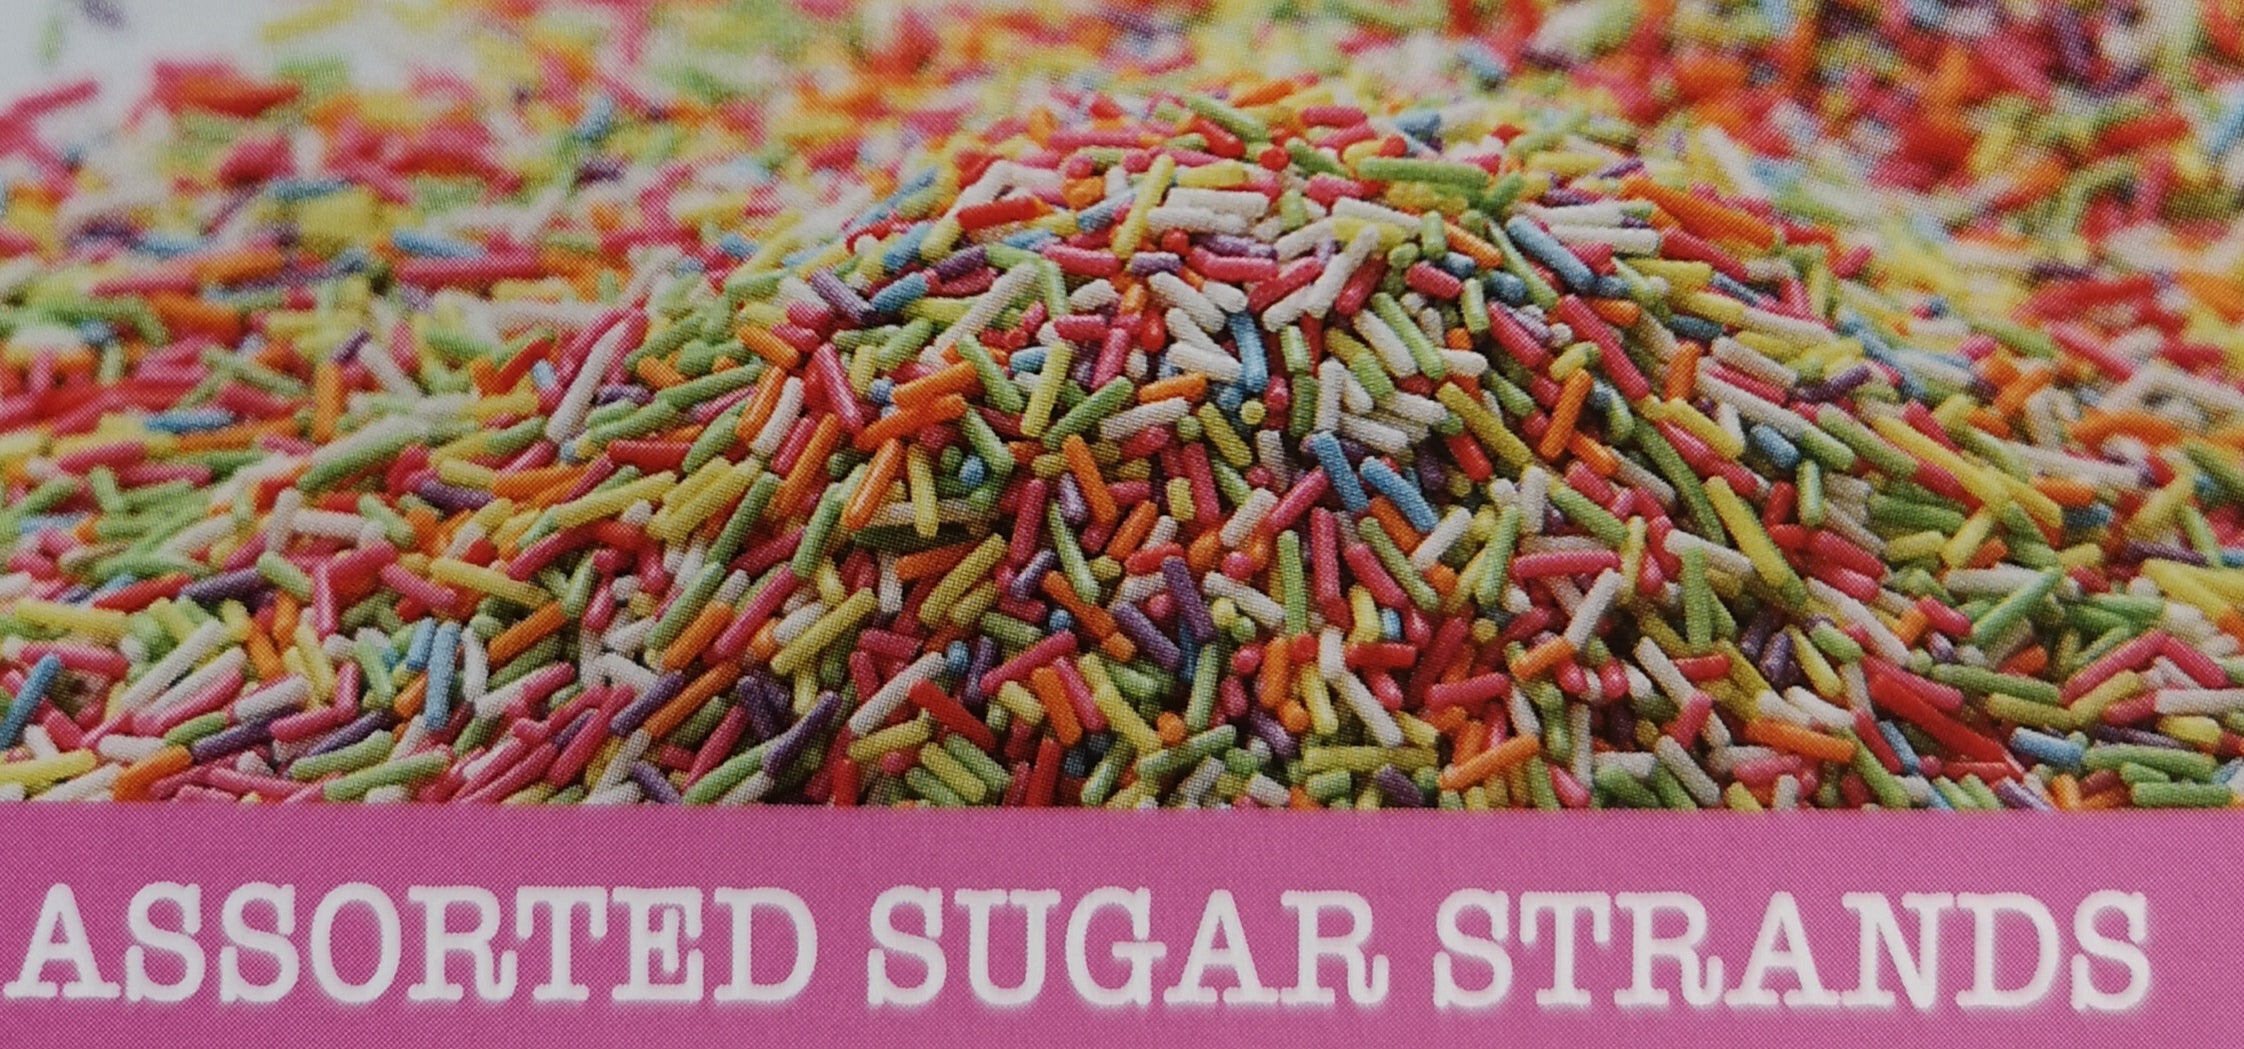 BULK BUY SPR3BULK4 - Assorted Sugar Strands(4 x 3kg bags) Was: €42.00 NOW: €37.50